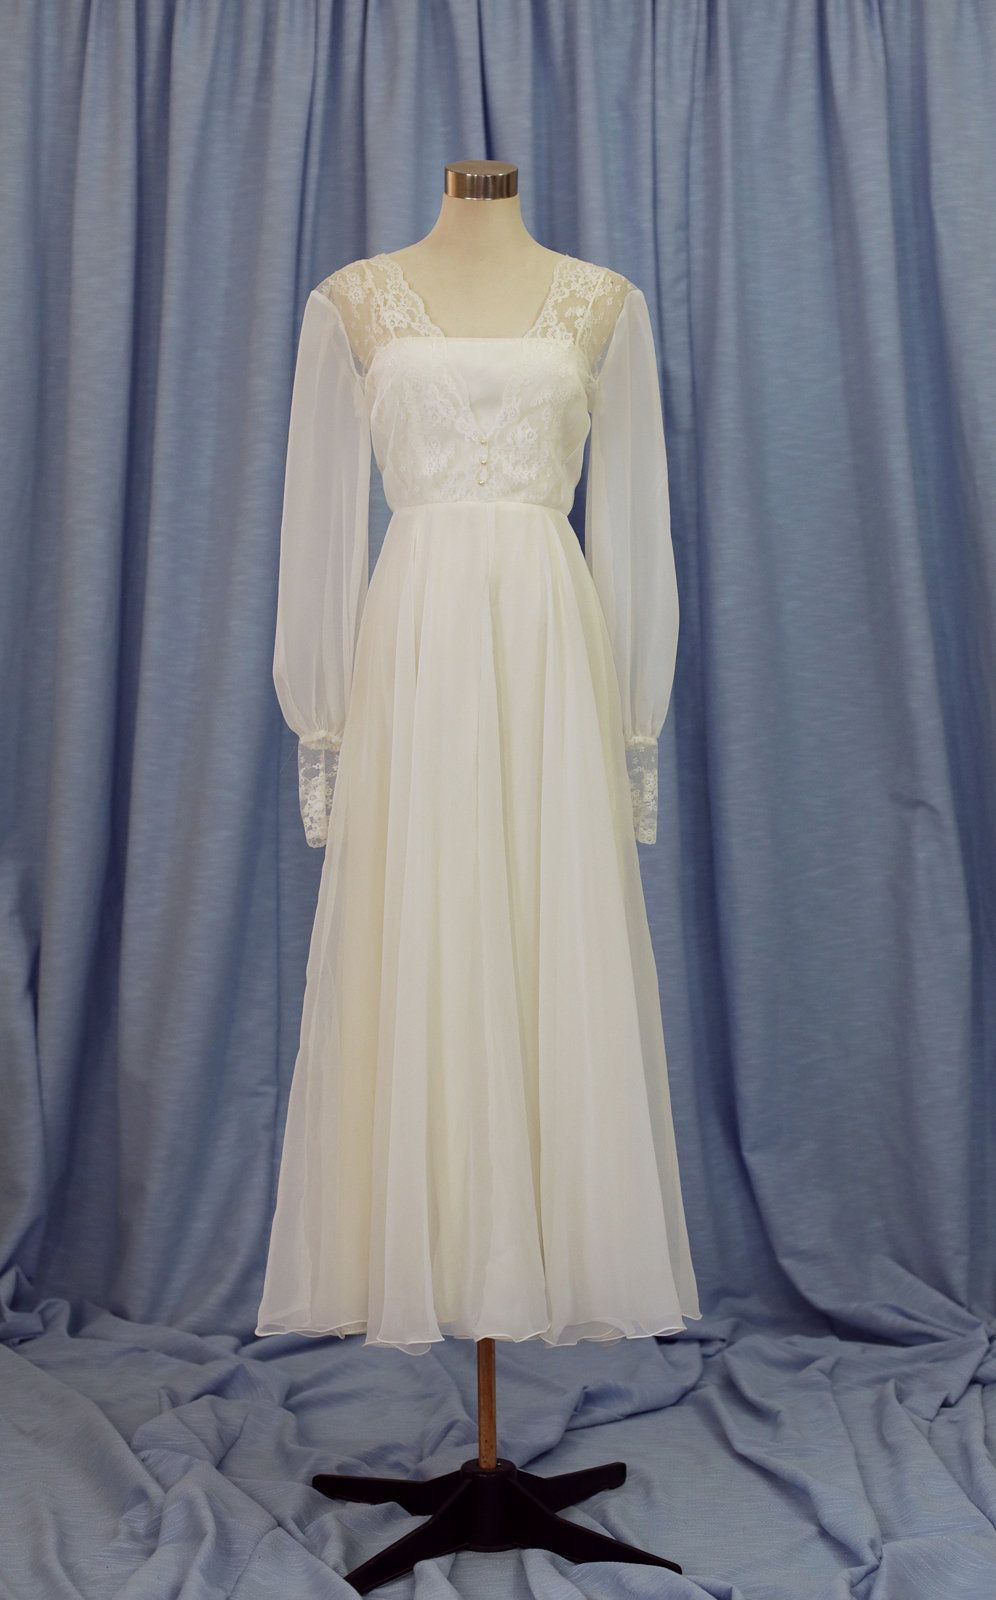 White Cream Vintage 1970s Lace Maxi Wedding Dress with